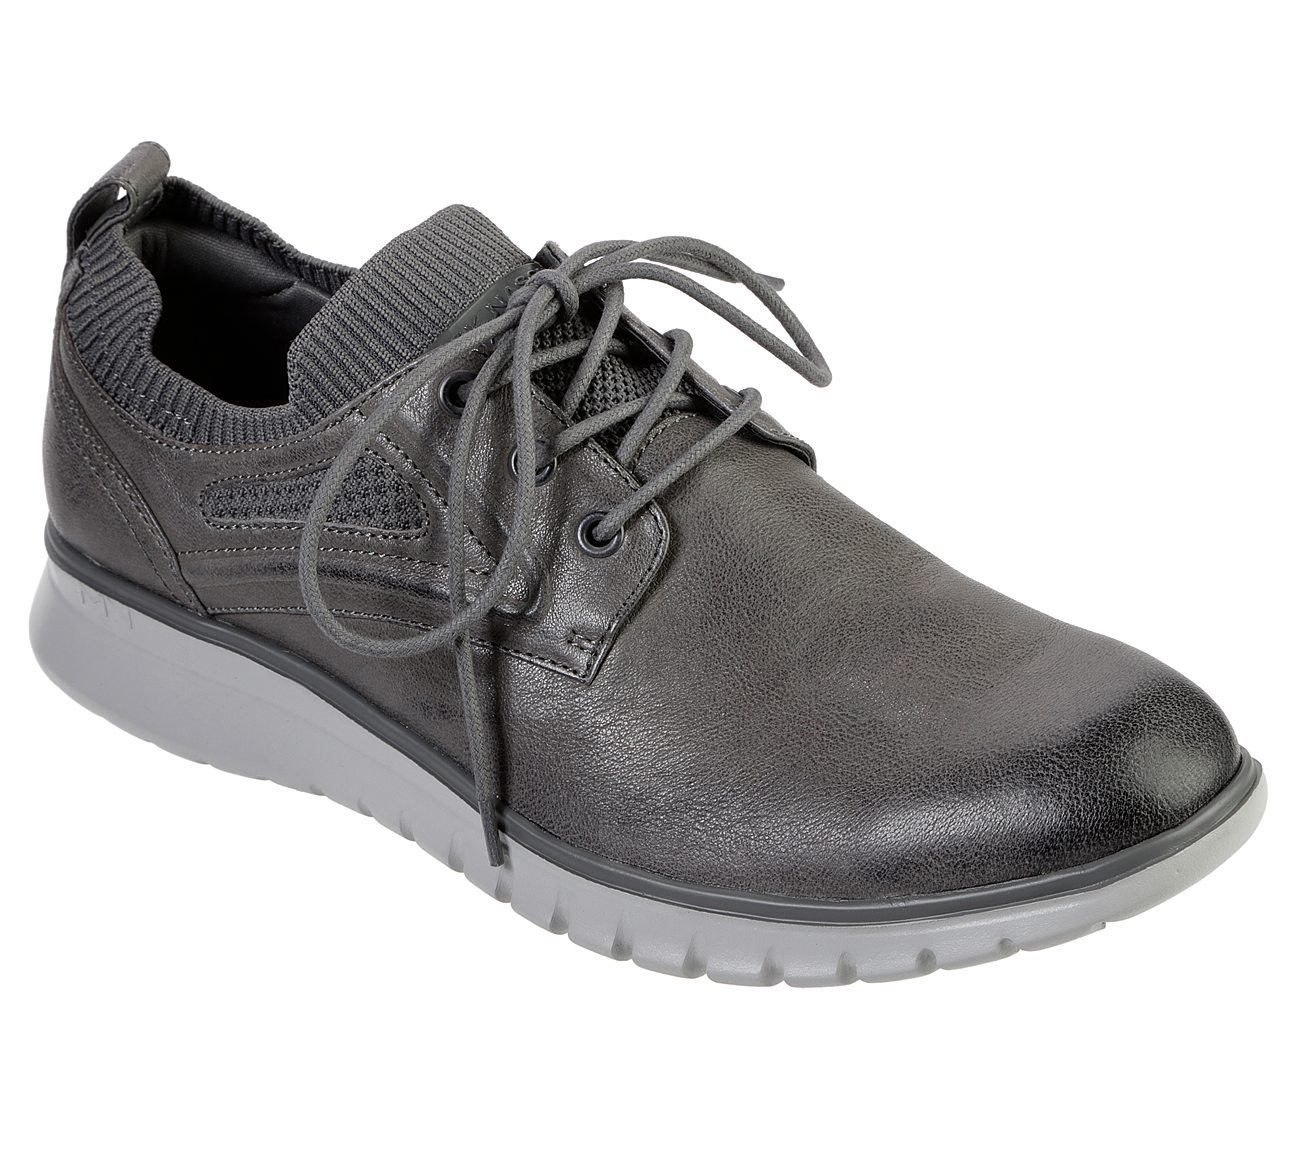 Neo Casual - Keizer Mark Nason Shoes